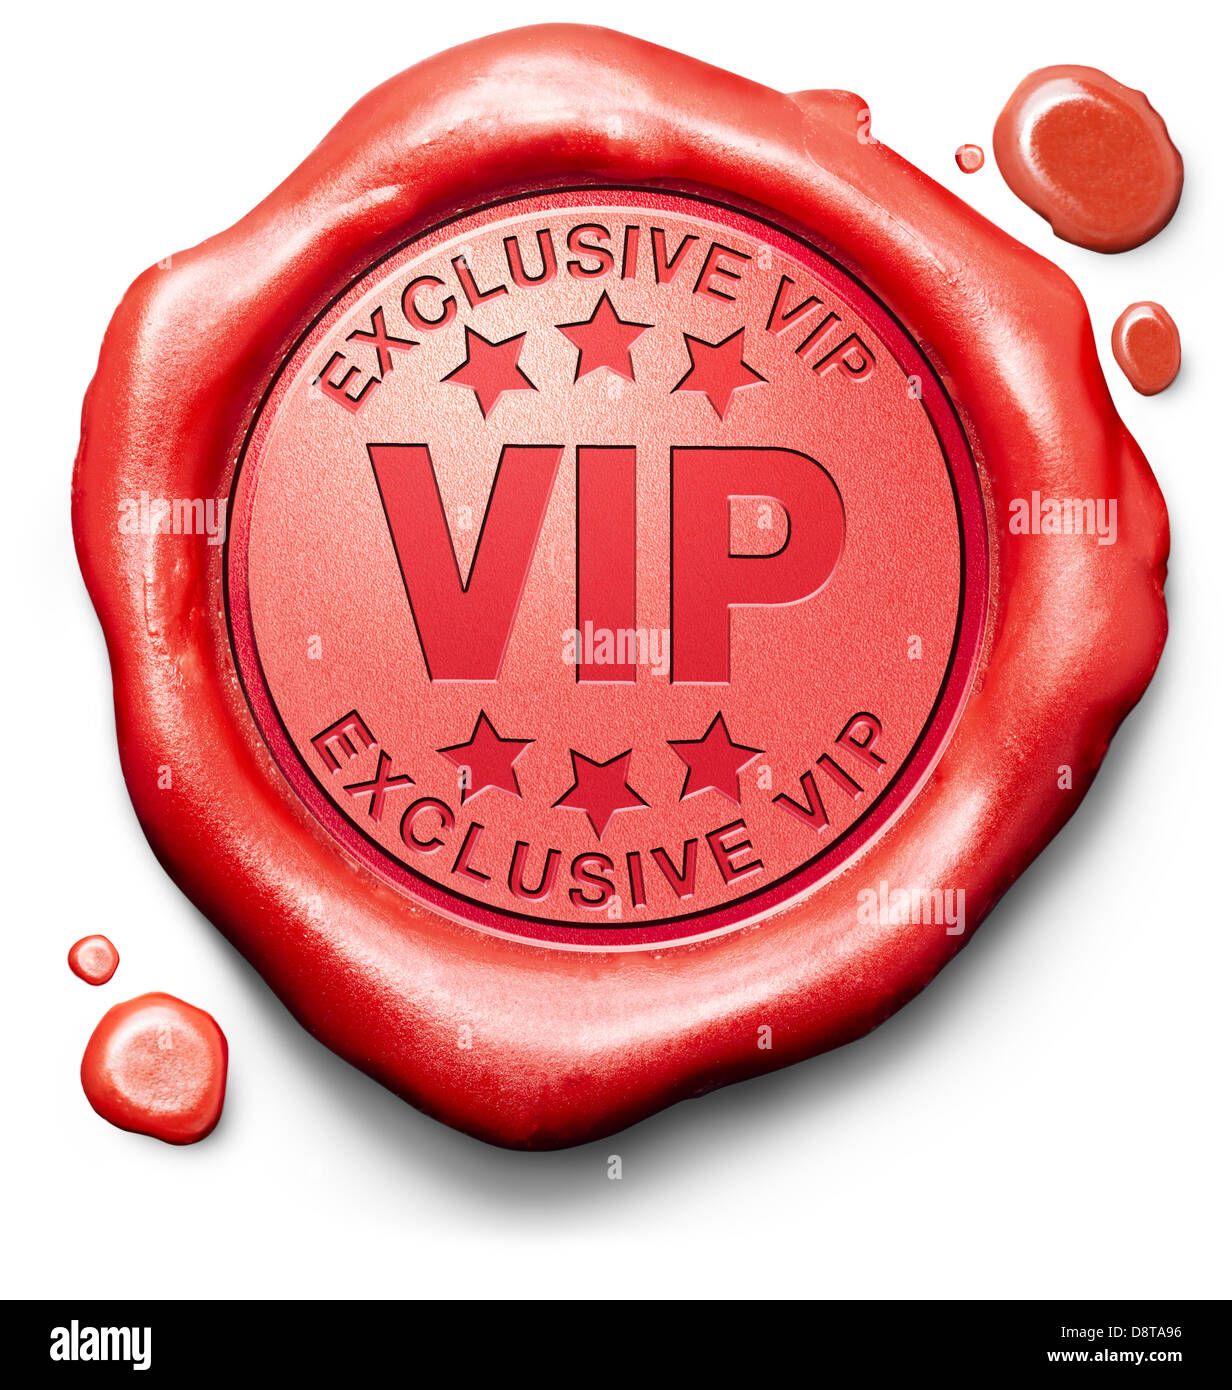 Vip Very Important Person Exclusive Star And Famous